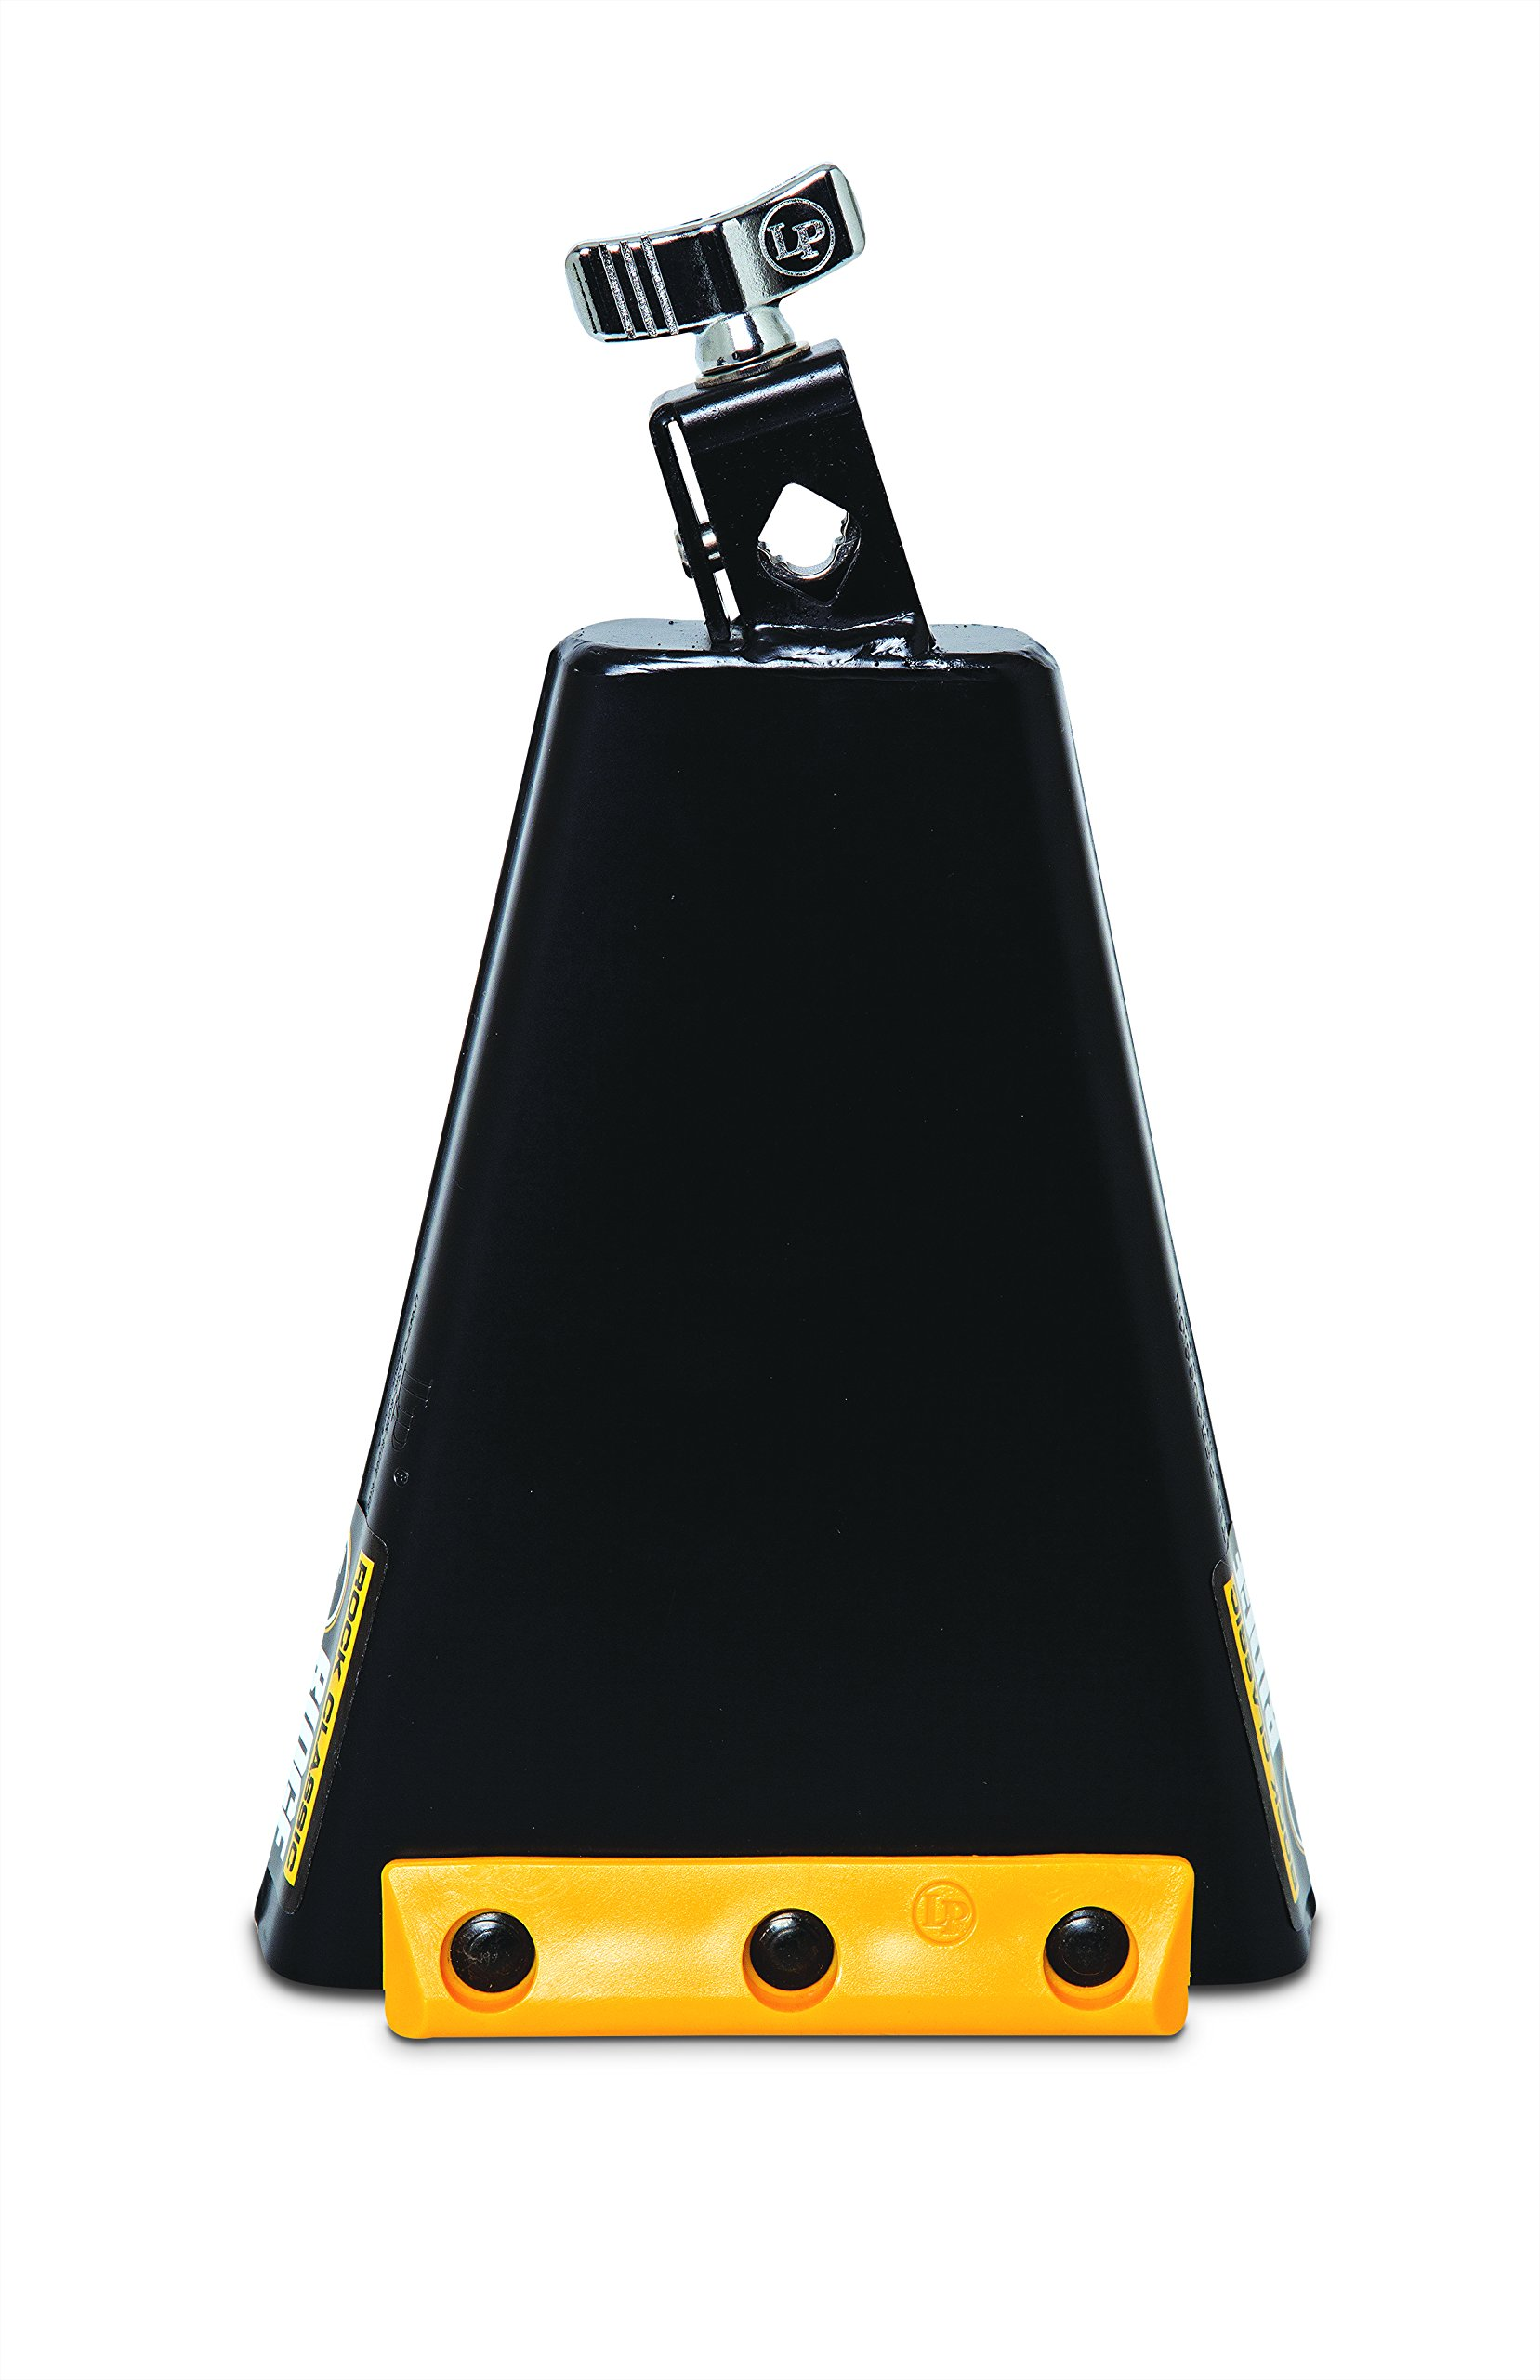 Latin Percussion LP009-N 8-Inch Class Rock Ridge Rider Cowbell with Self-Aligning 1/2-Inch Mount by Latin Percussion